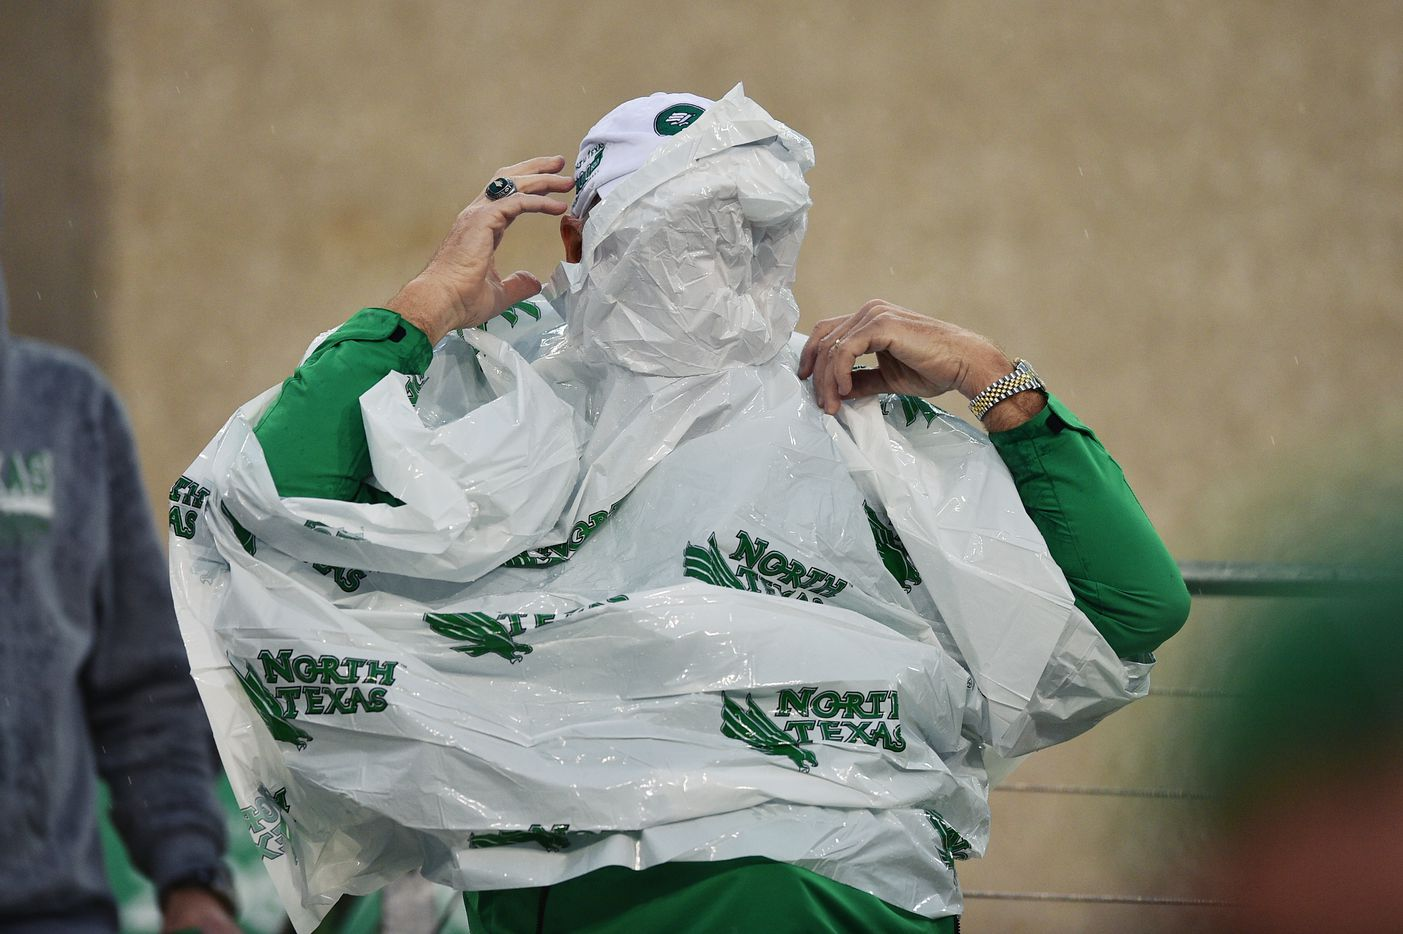 A North Texas Mean Green fan fights against the wind as he tries to put on a poncho during a game against Florida International, in November 2014, at Apogee Stadium in Denton.